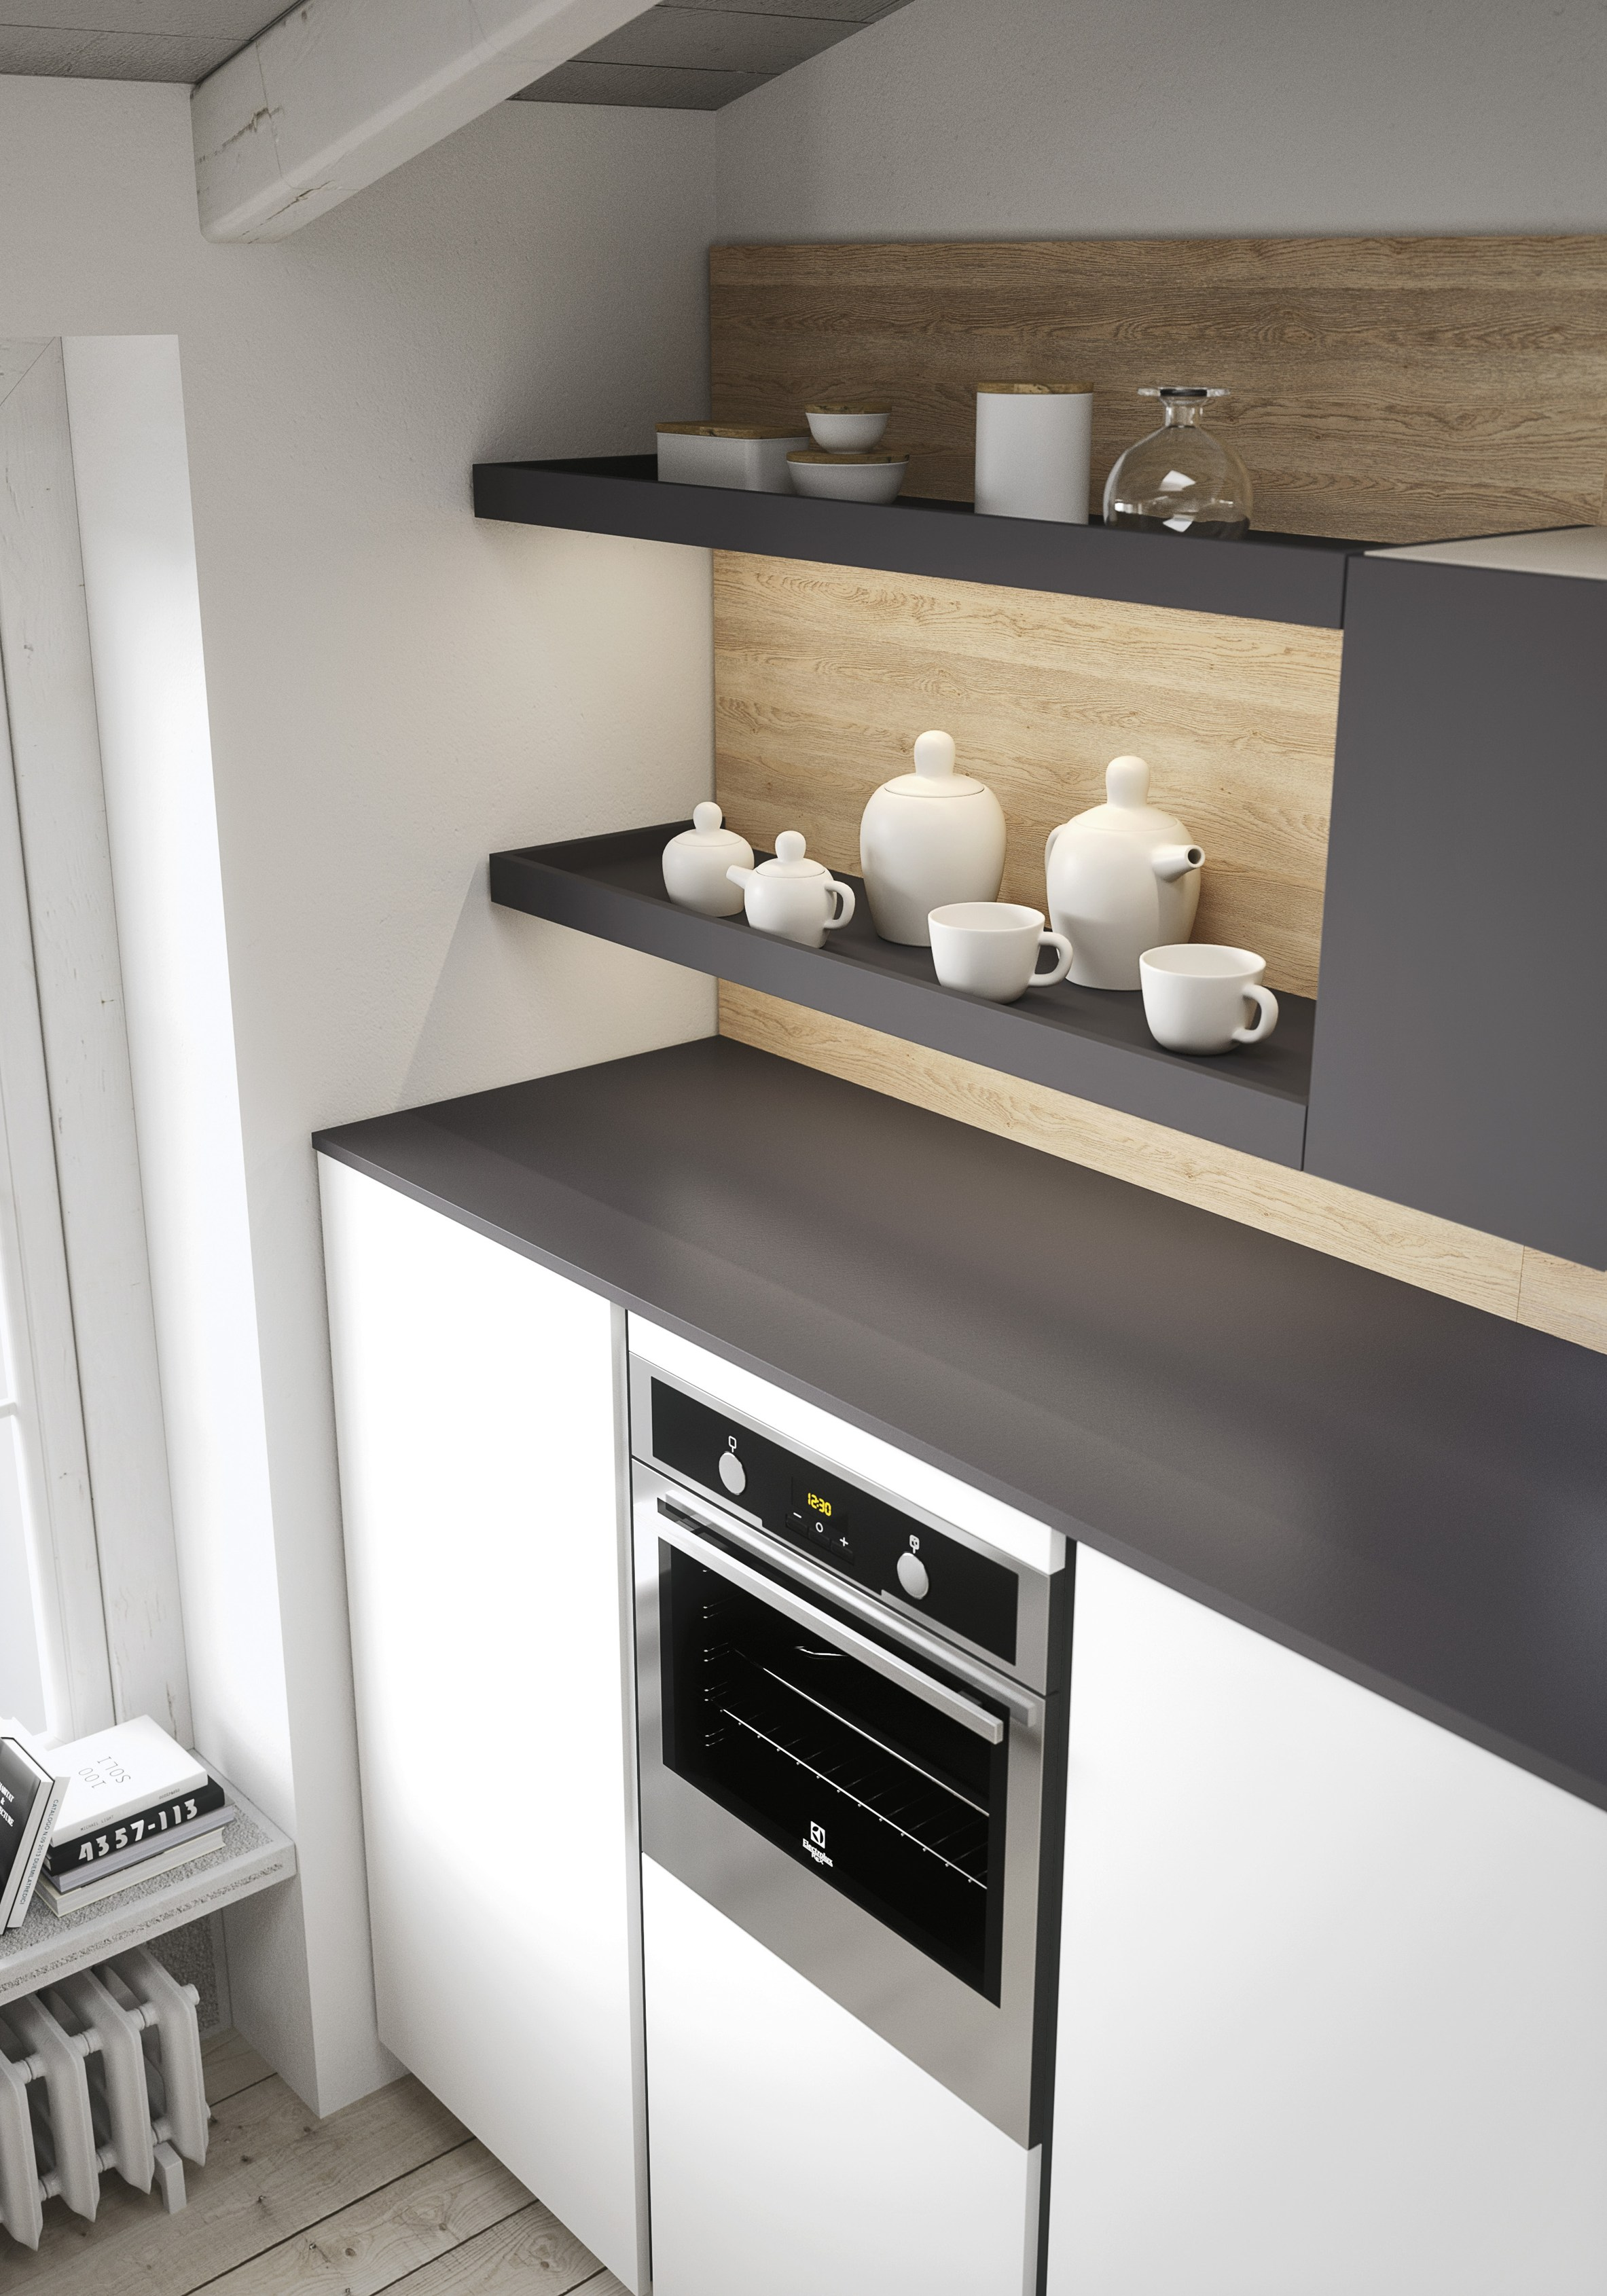 FIRST Cucina in stile moderno by Snaidero design Snaidero